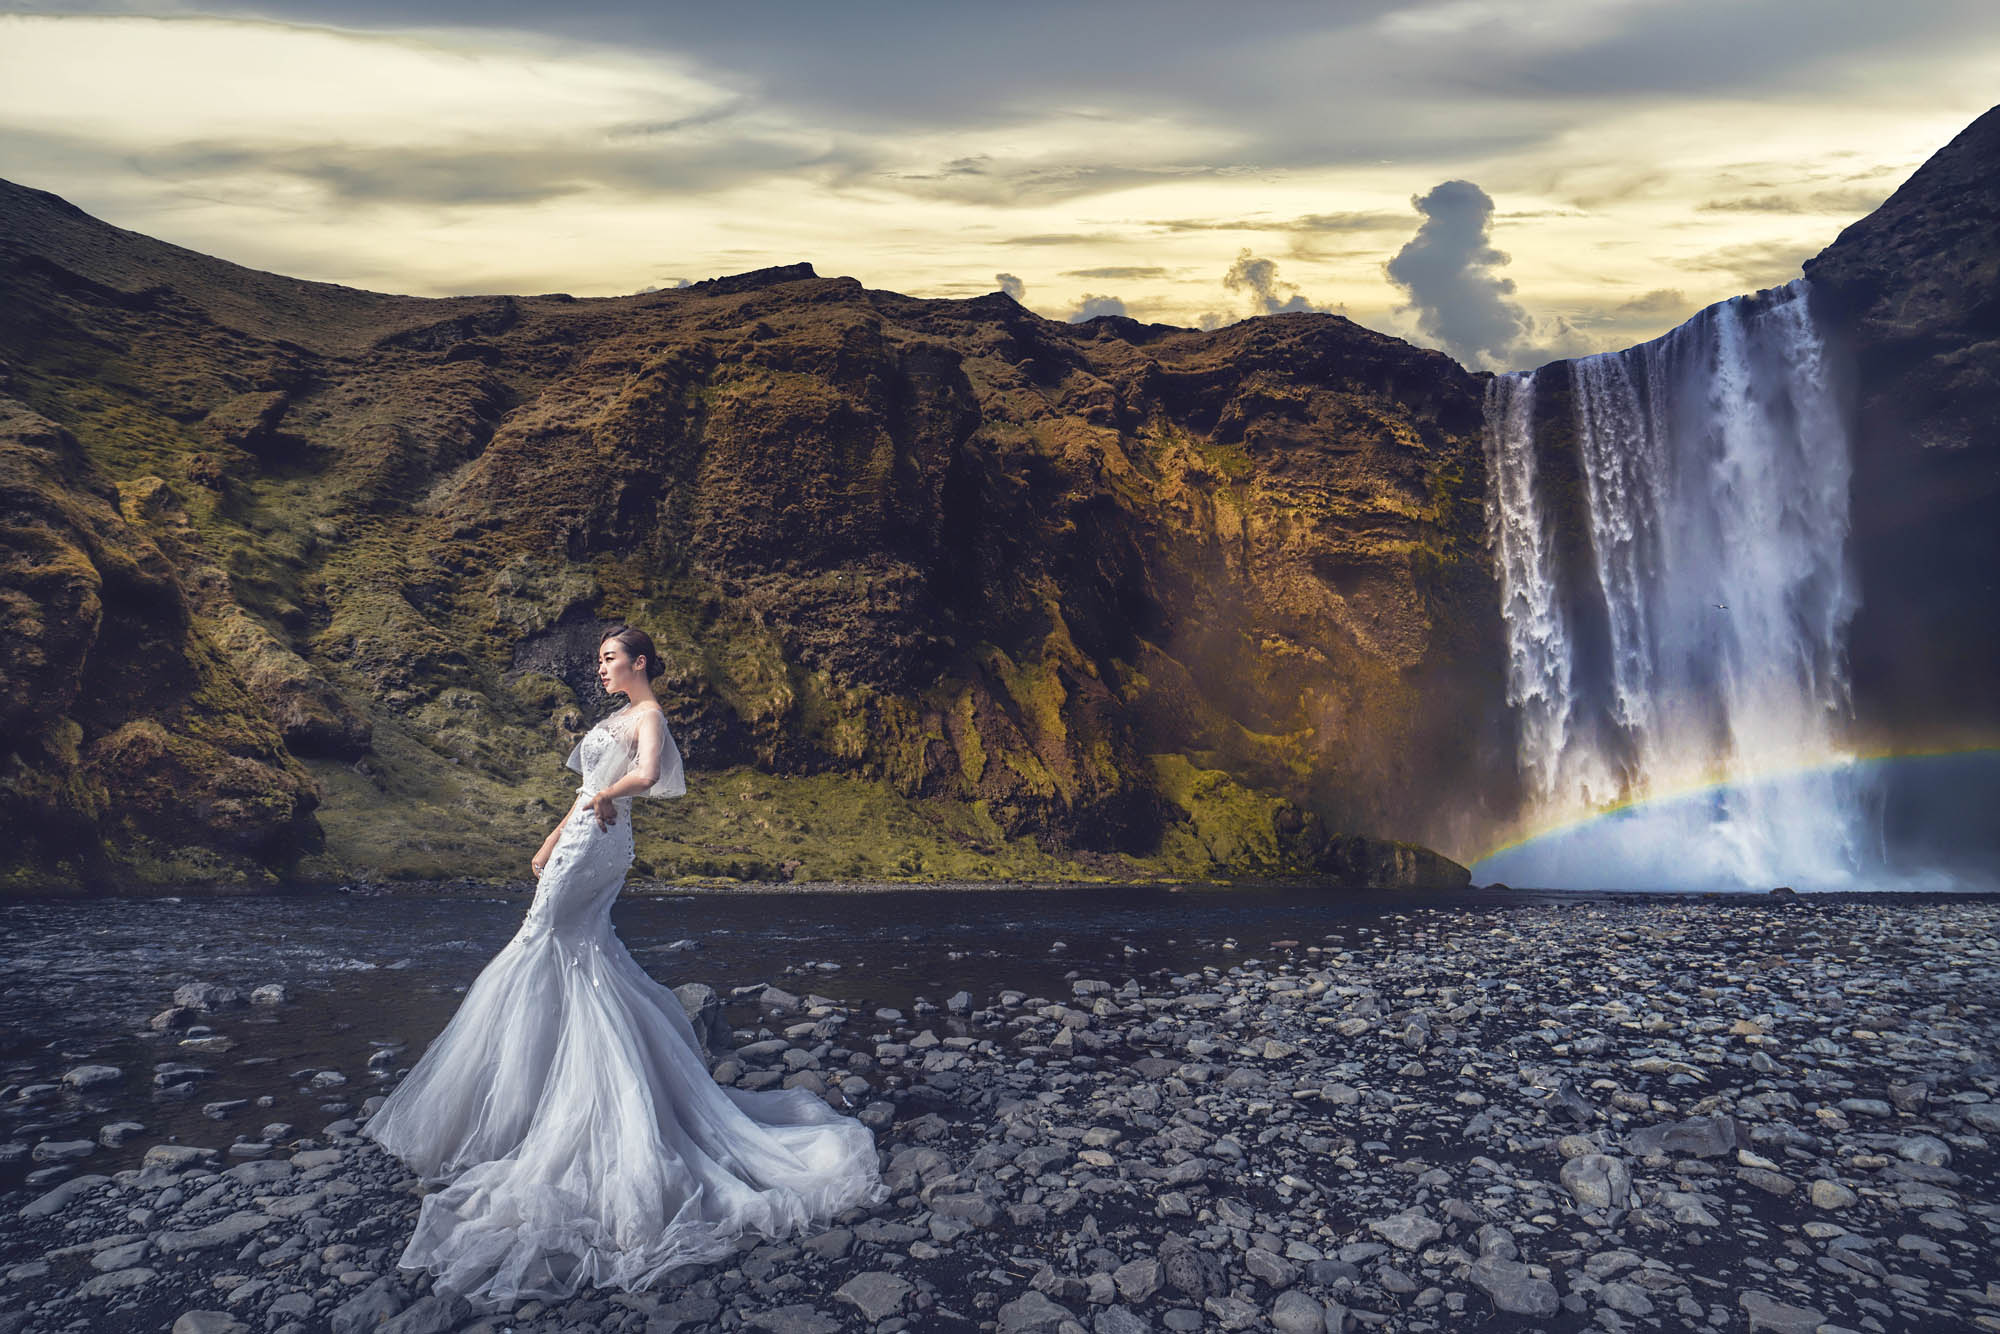 Bride in tulle trumpet gown by waterfalls, by CM Leung